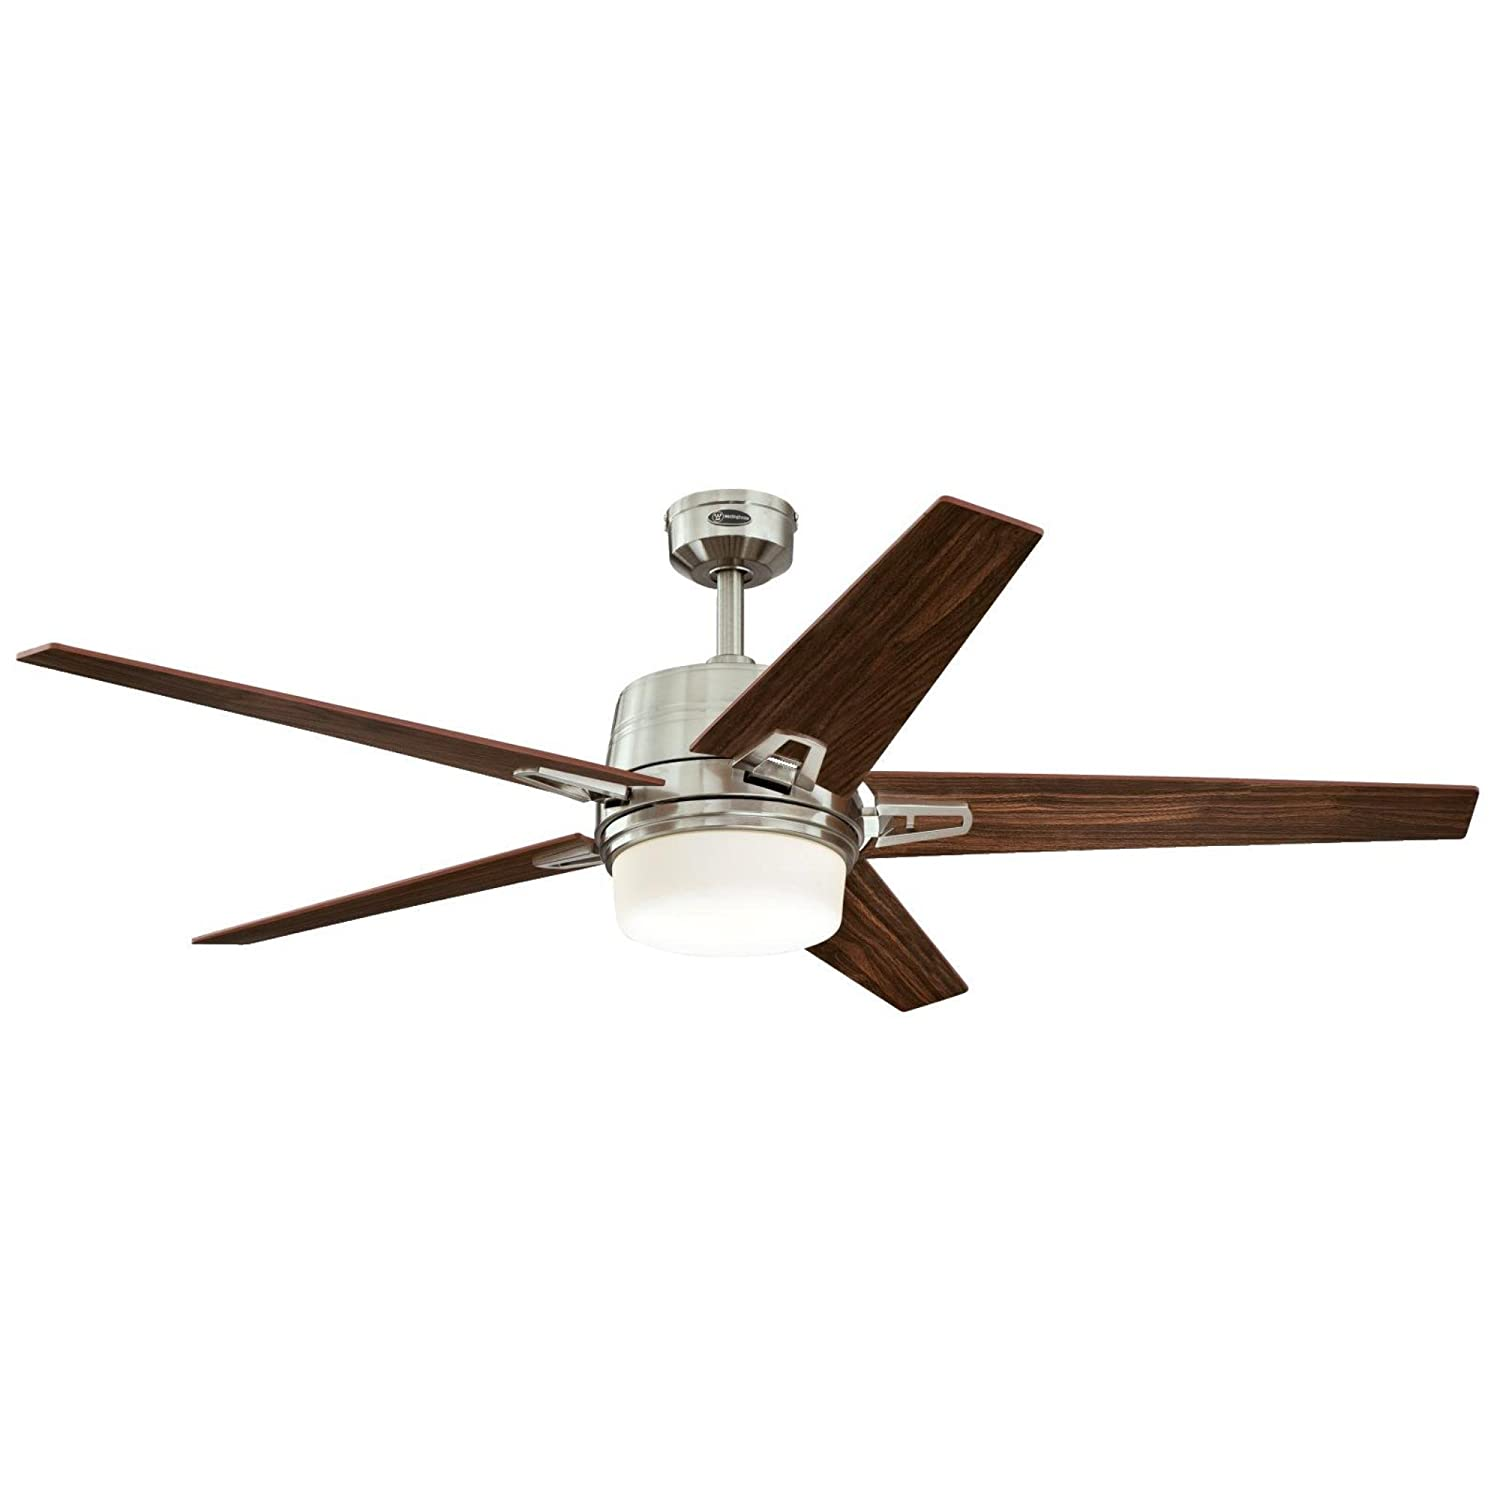 Westinghouse Lighting 7204600, Remote Control Included Zephyr 56-inch Brushed Nickel Indoor Ceiling Fan, Dimmable LED Light Kit with Opal Frosted Glass,